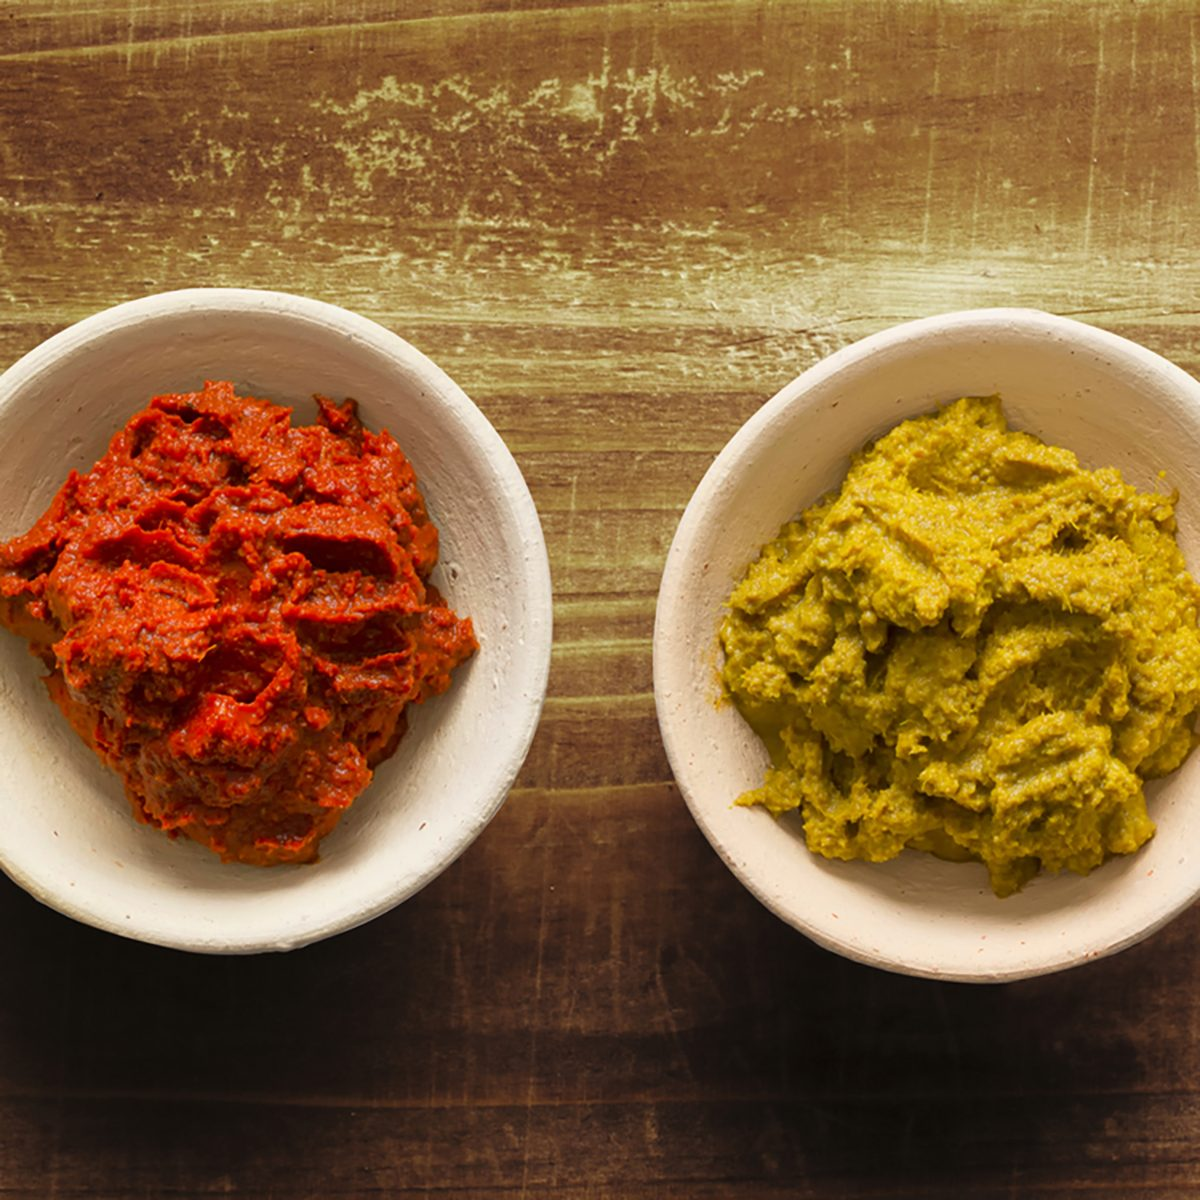 close up of bowls of rustic red and yellow indian curry paste